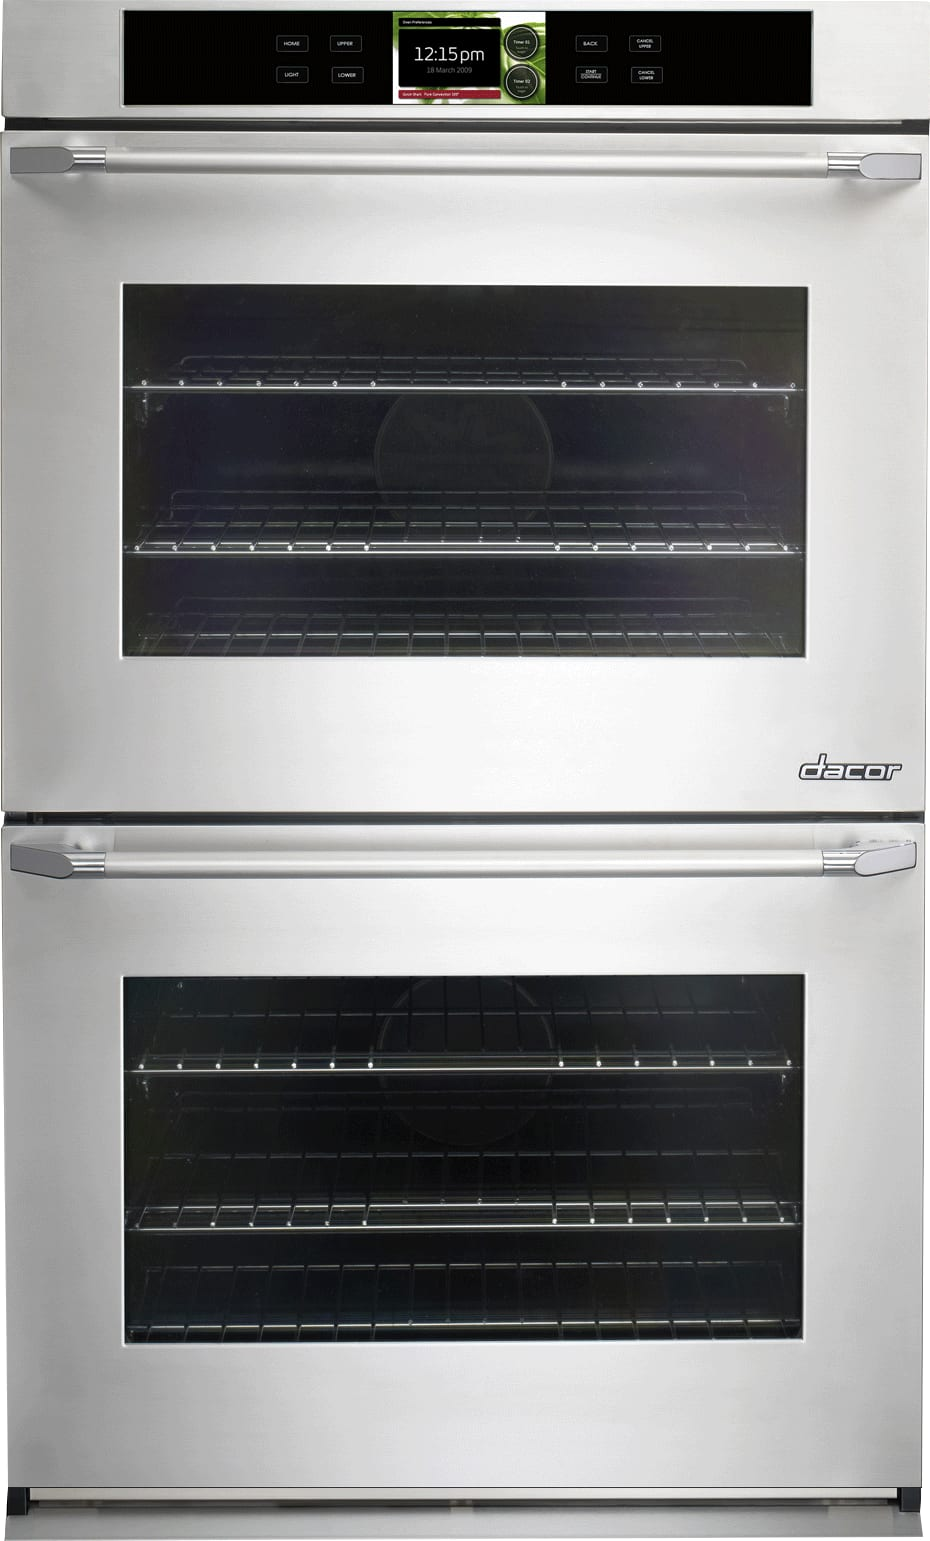 hight resolution of dacor double oven wiring diagram for